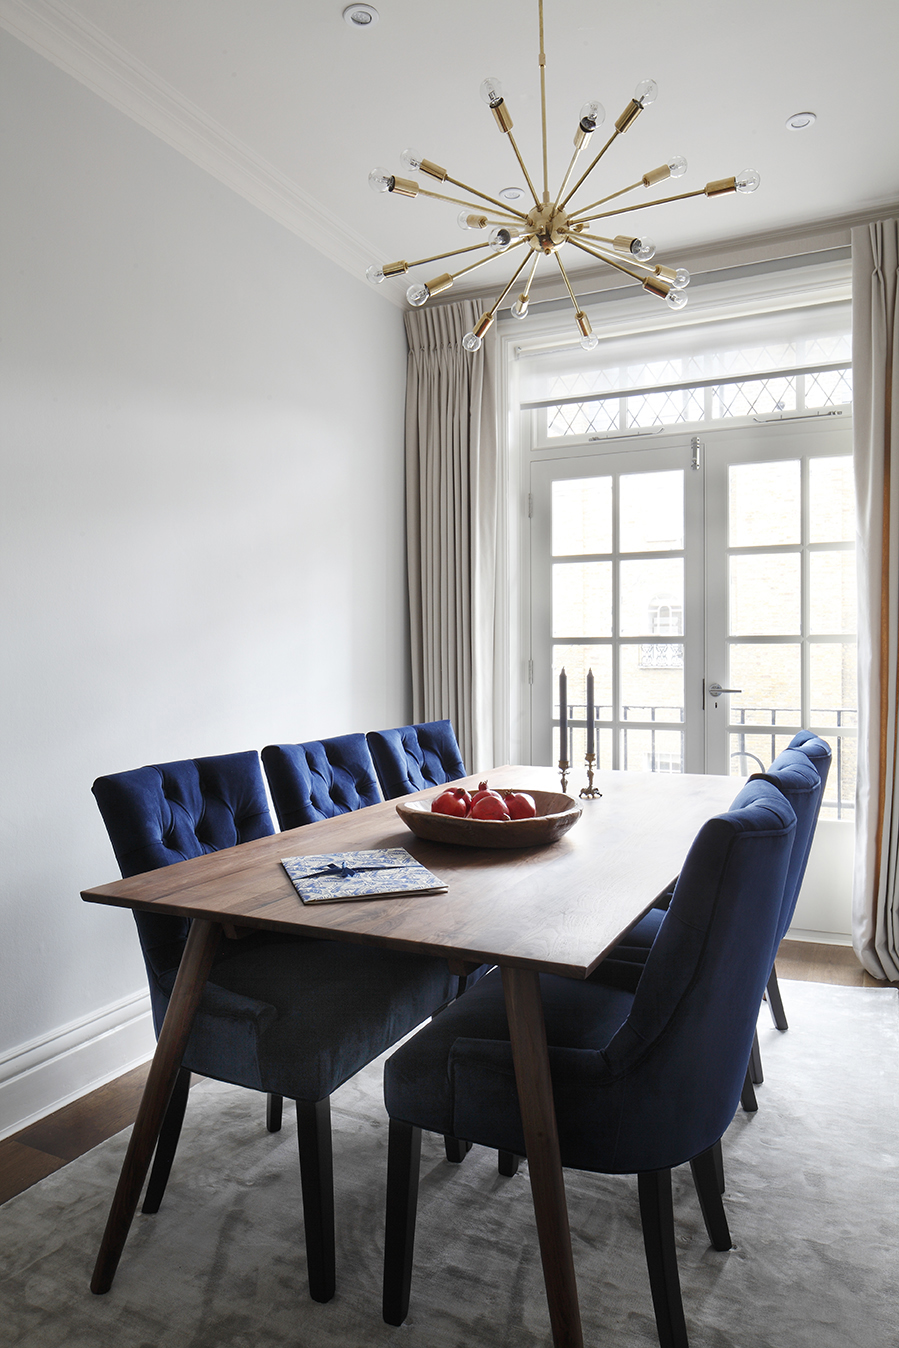 NW1 - Dining room - Displaying the dining table & sputnik light - LO.jpg